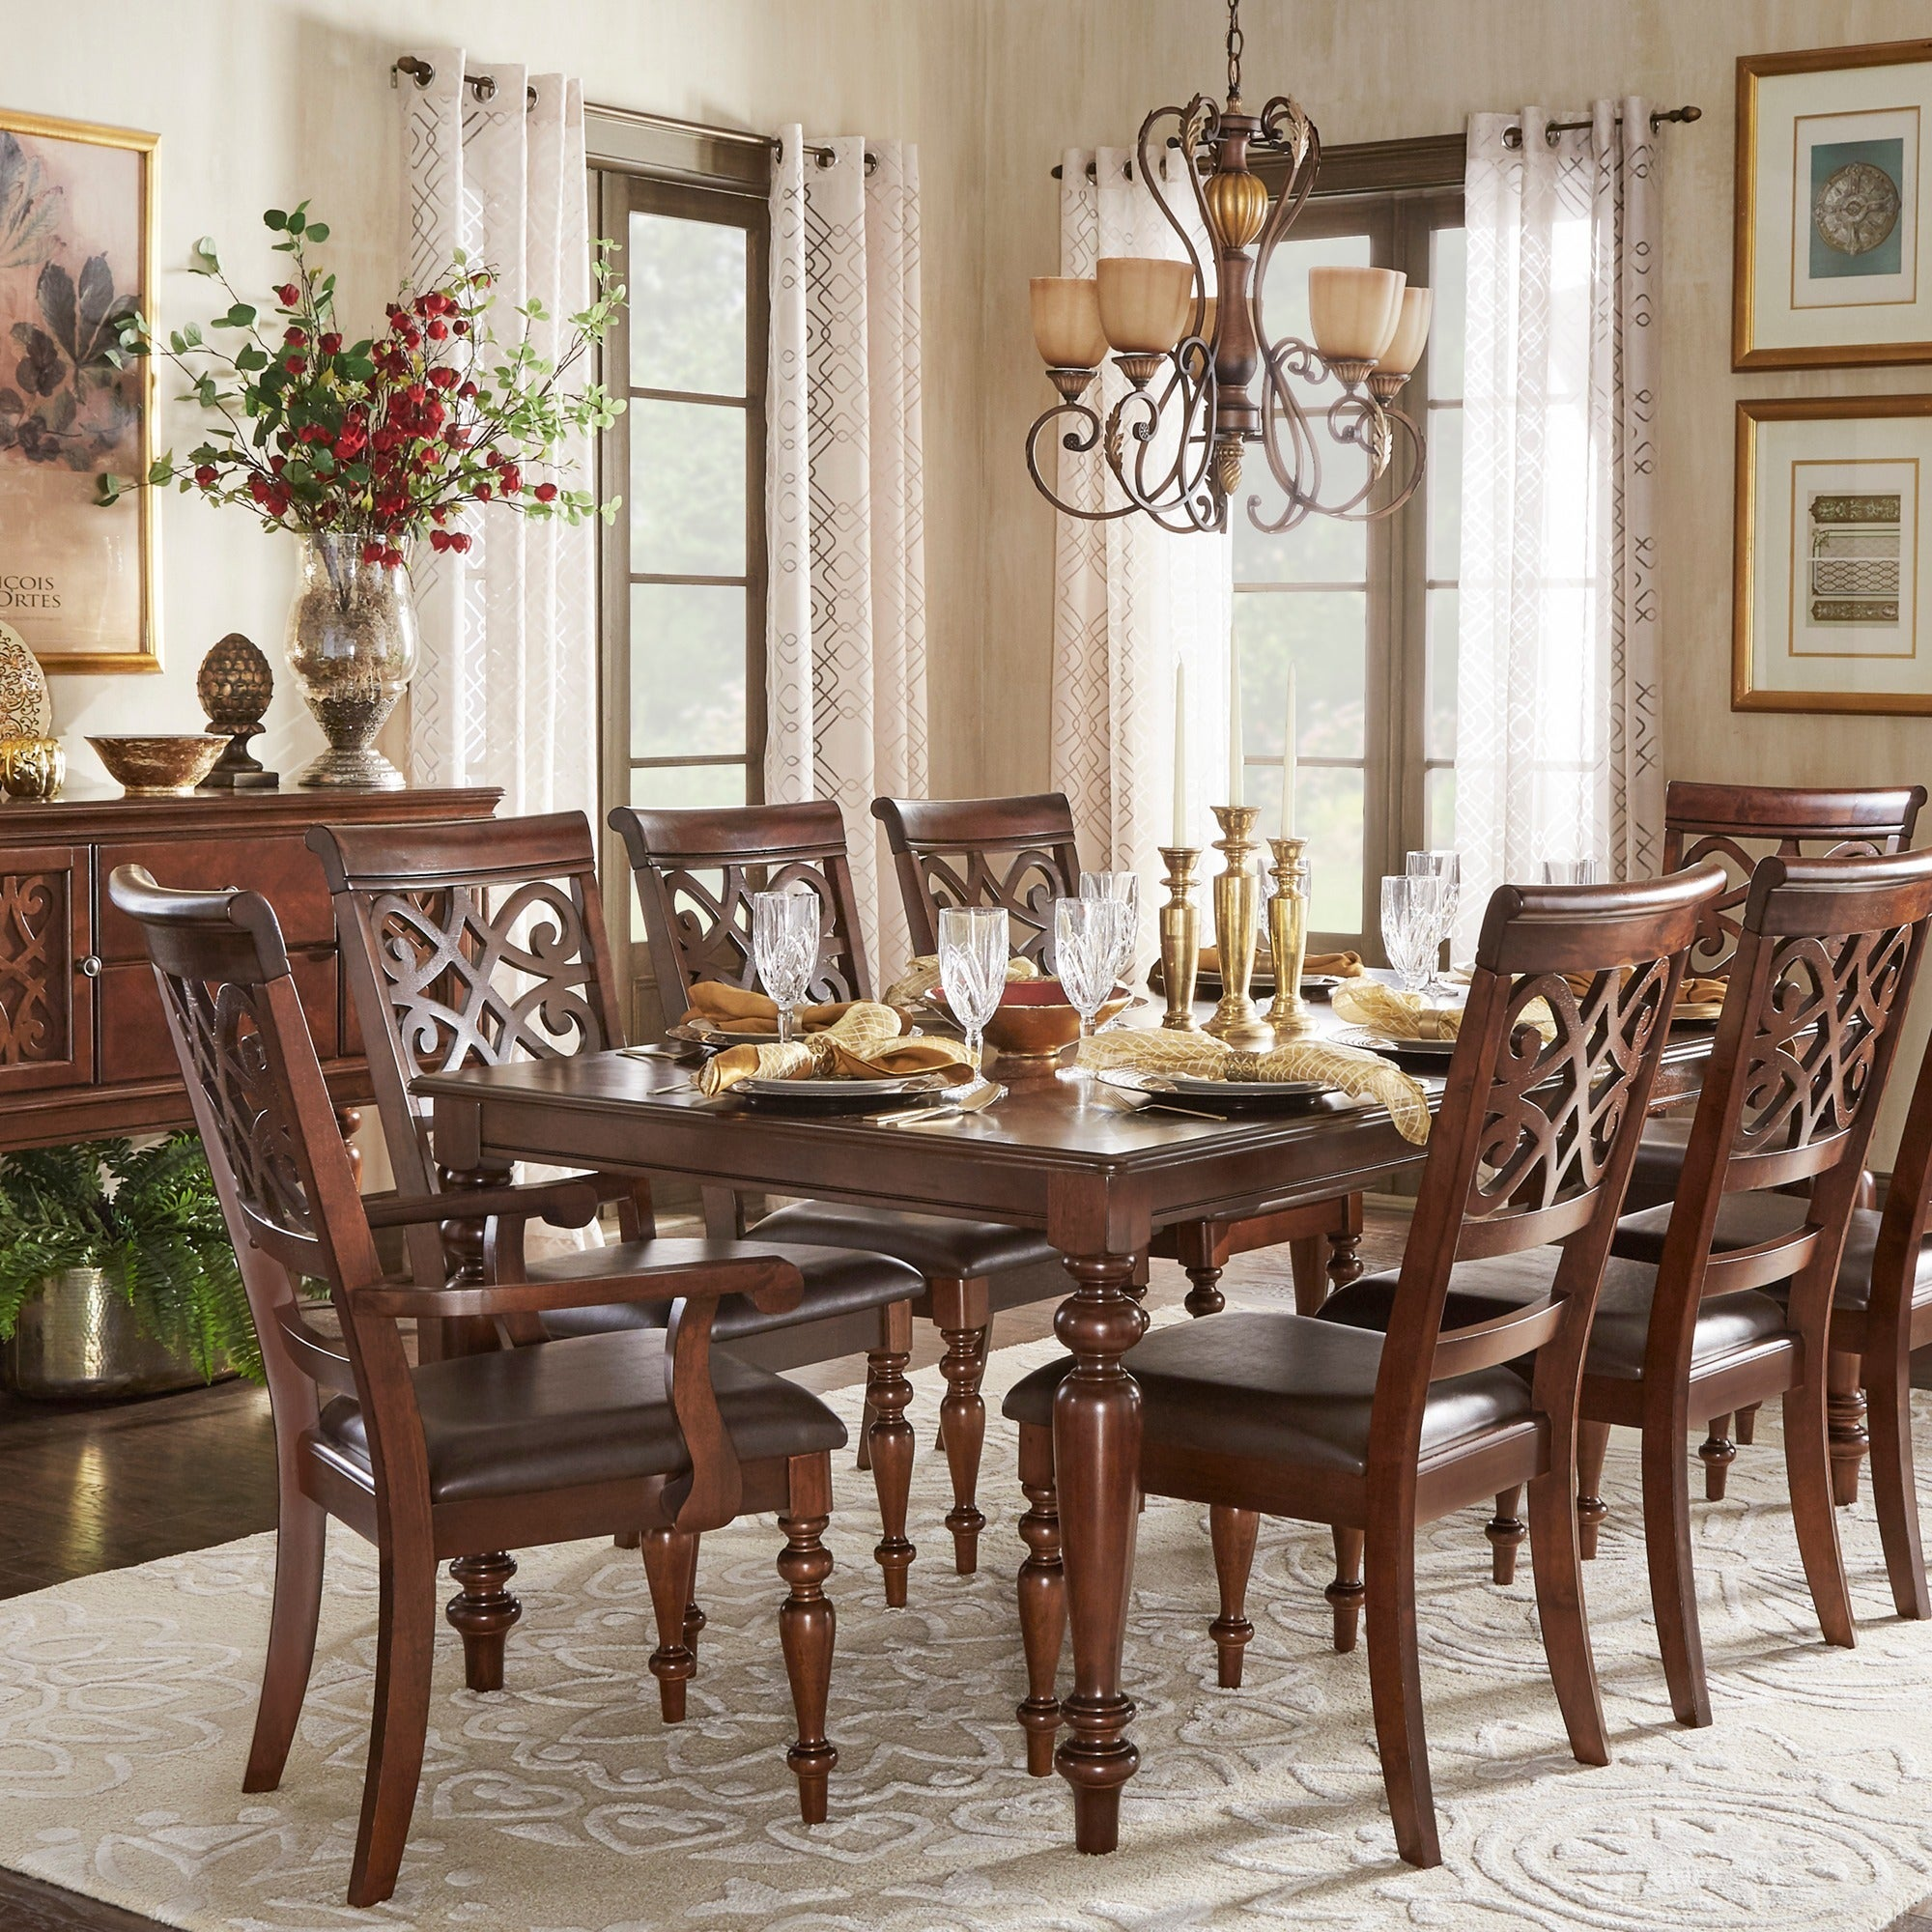 Emma Catherine Cherry Extending Dining Set by